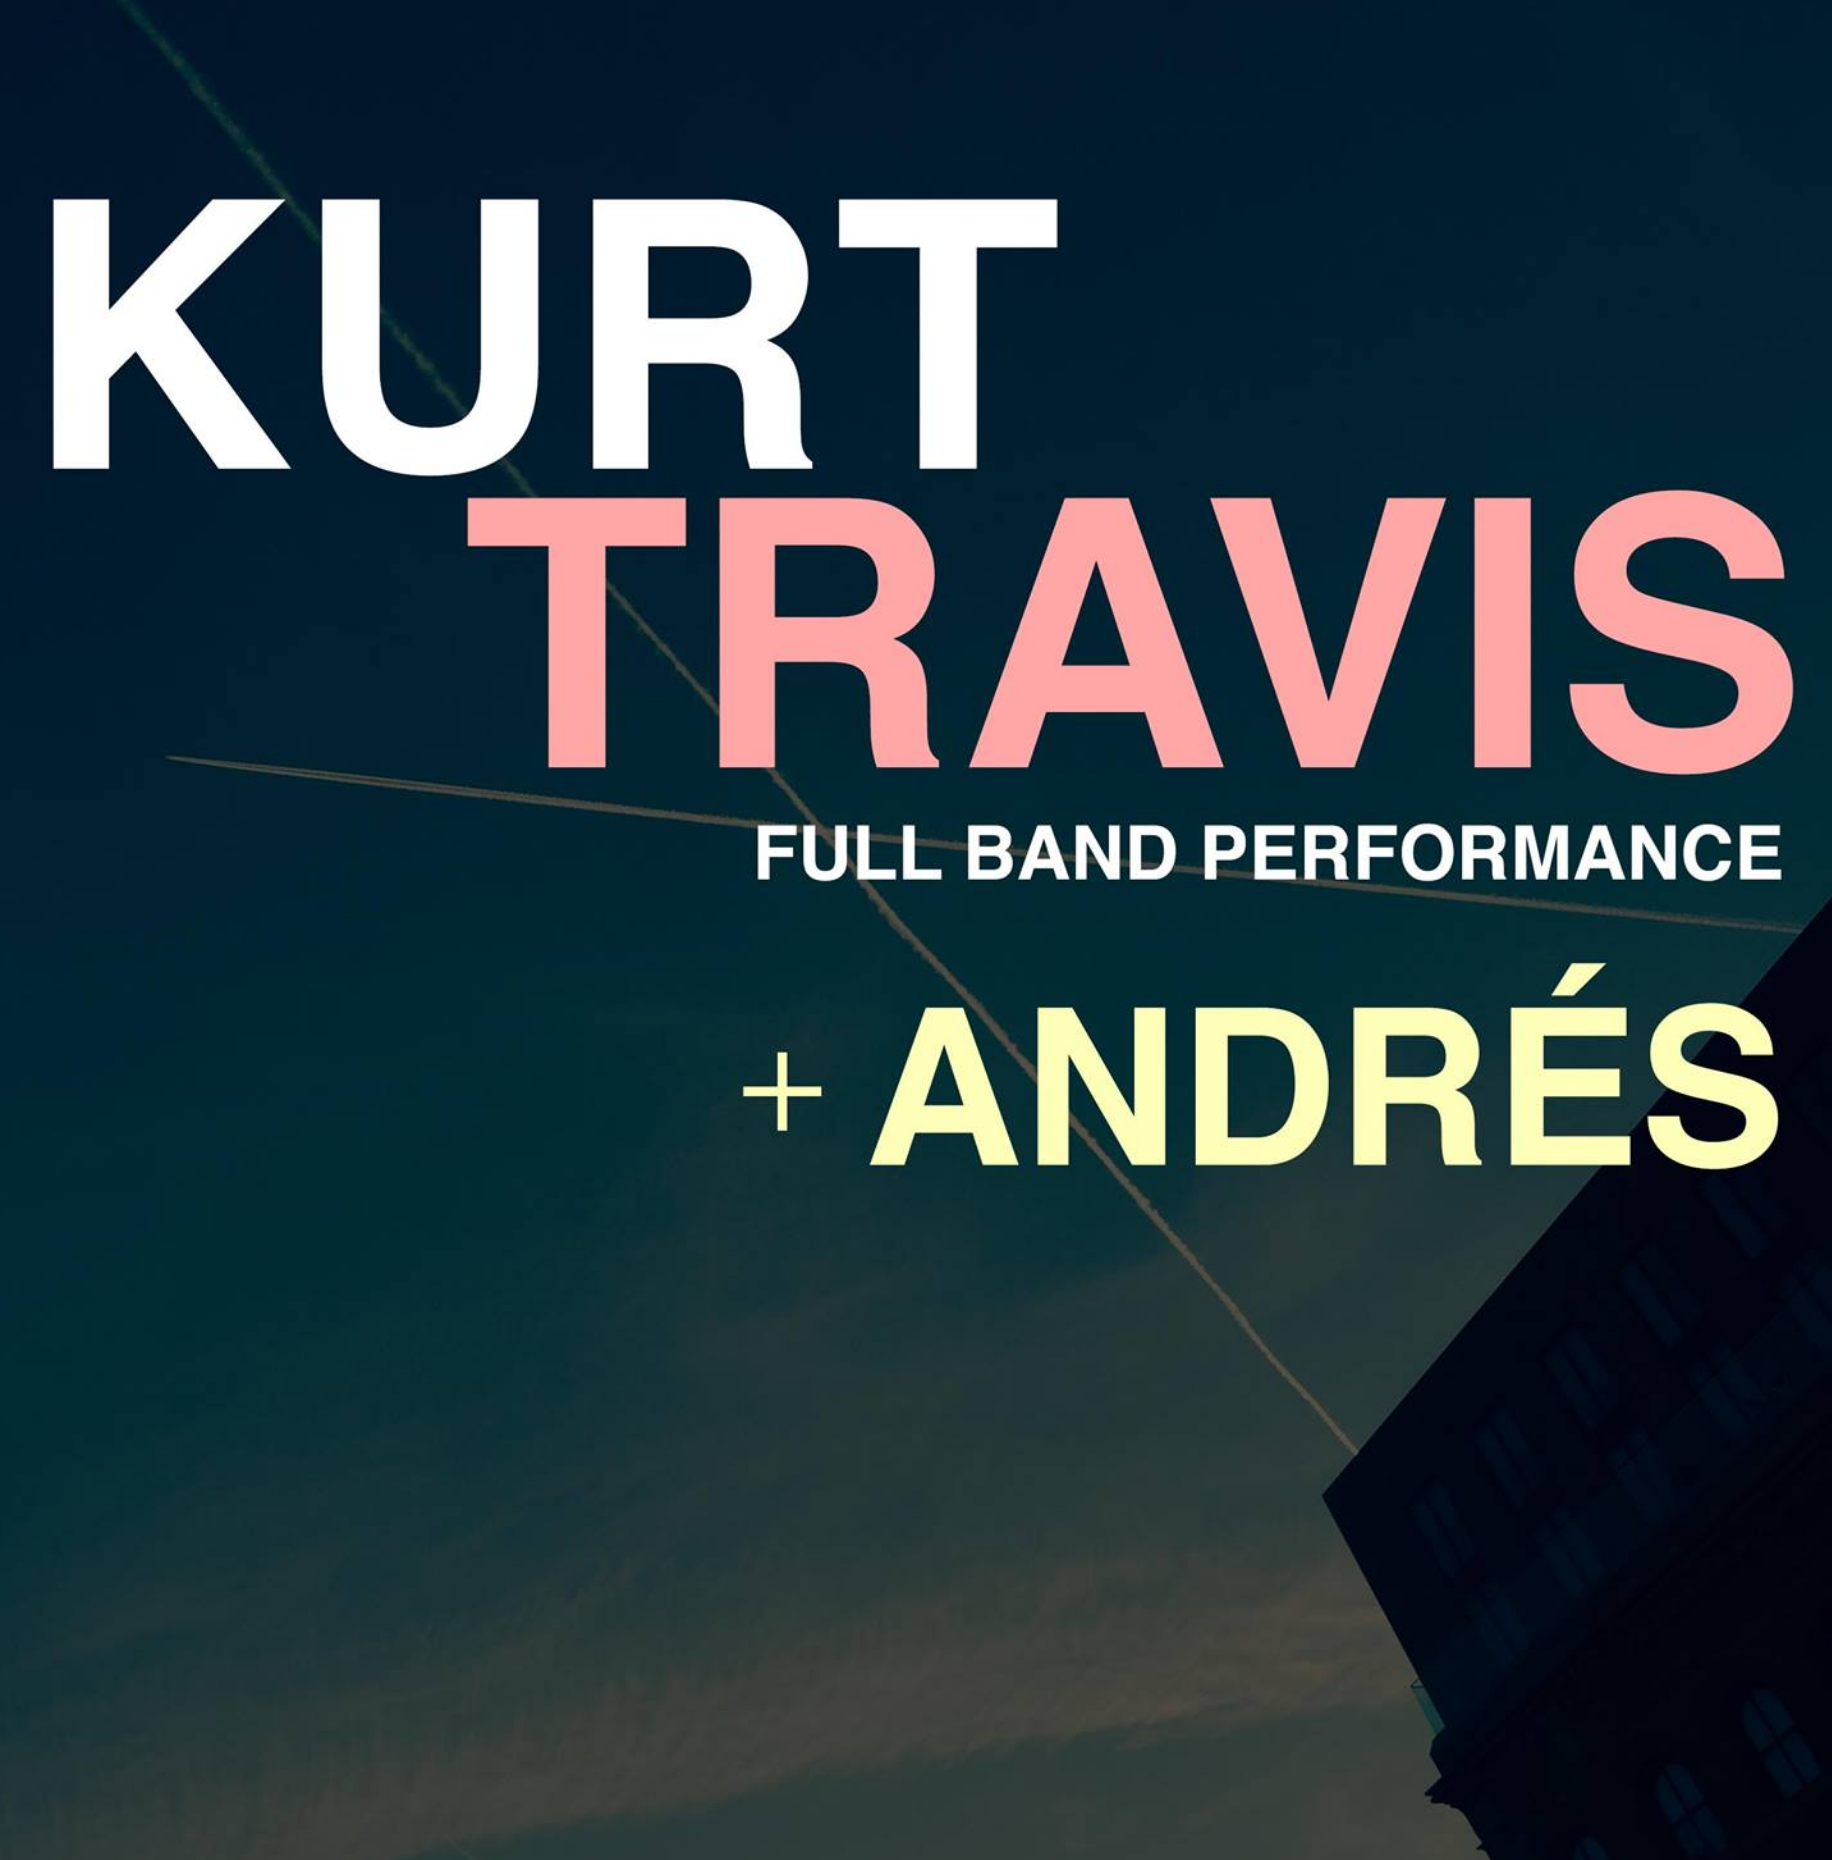 Kurt Travis (Full Band Performance)